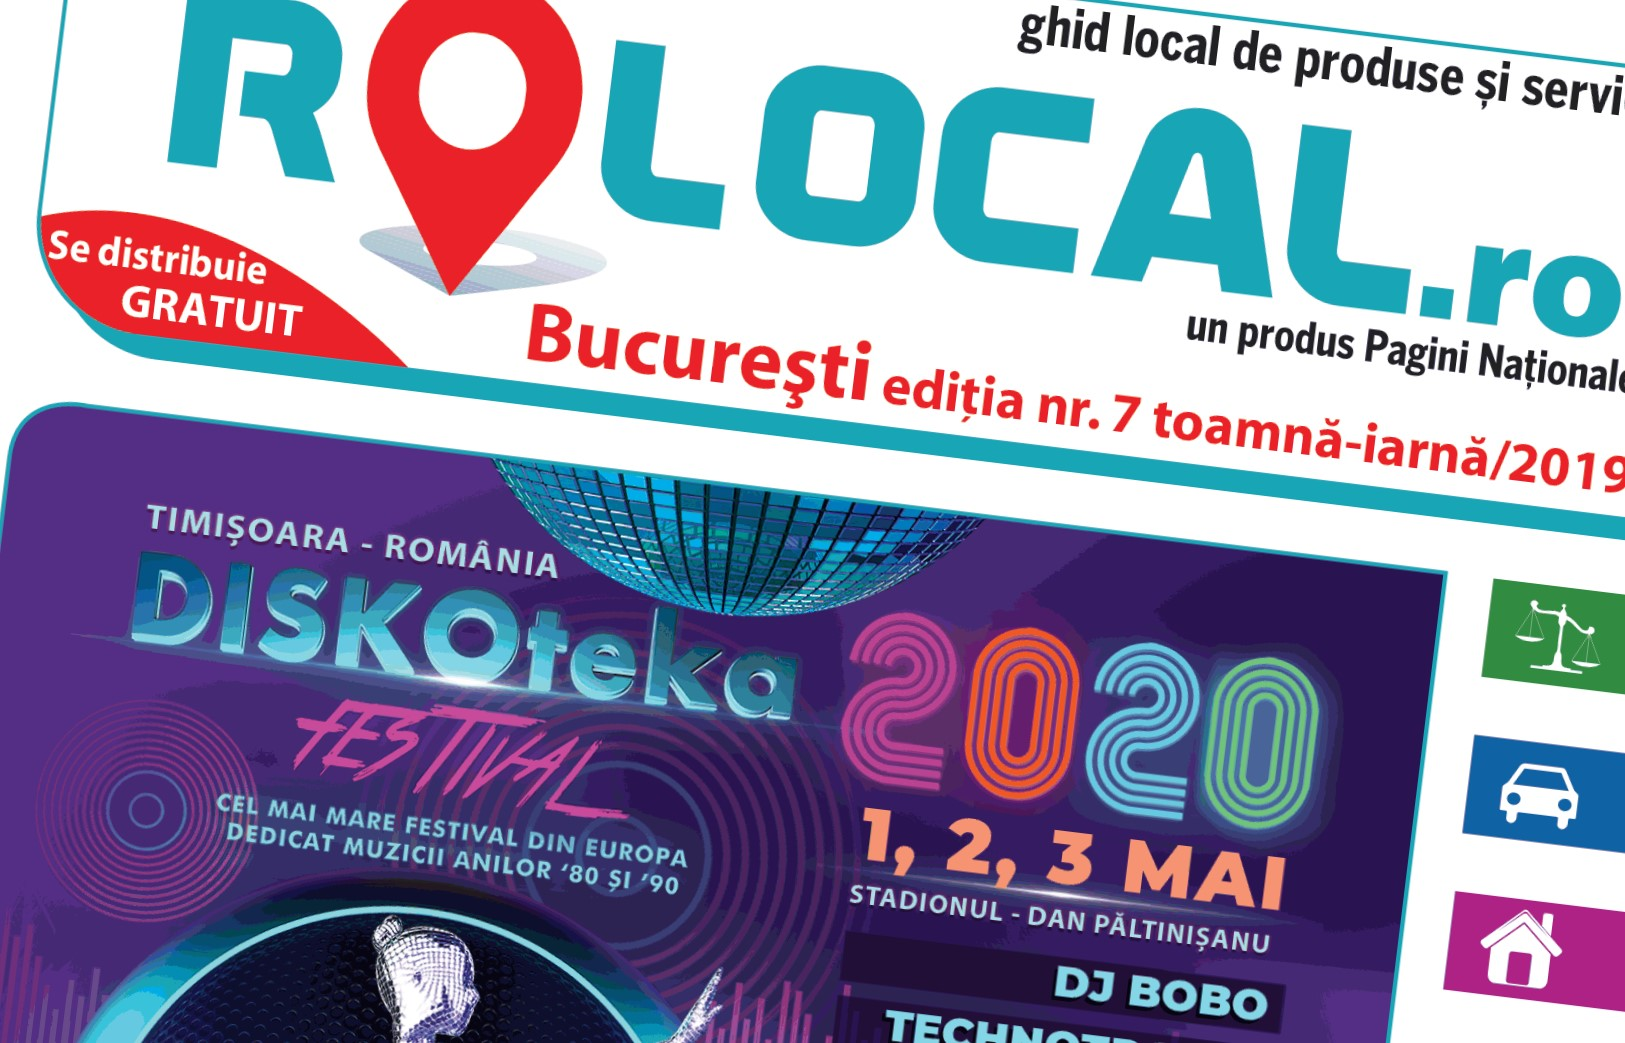 roLOCAL